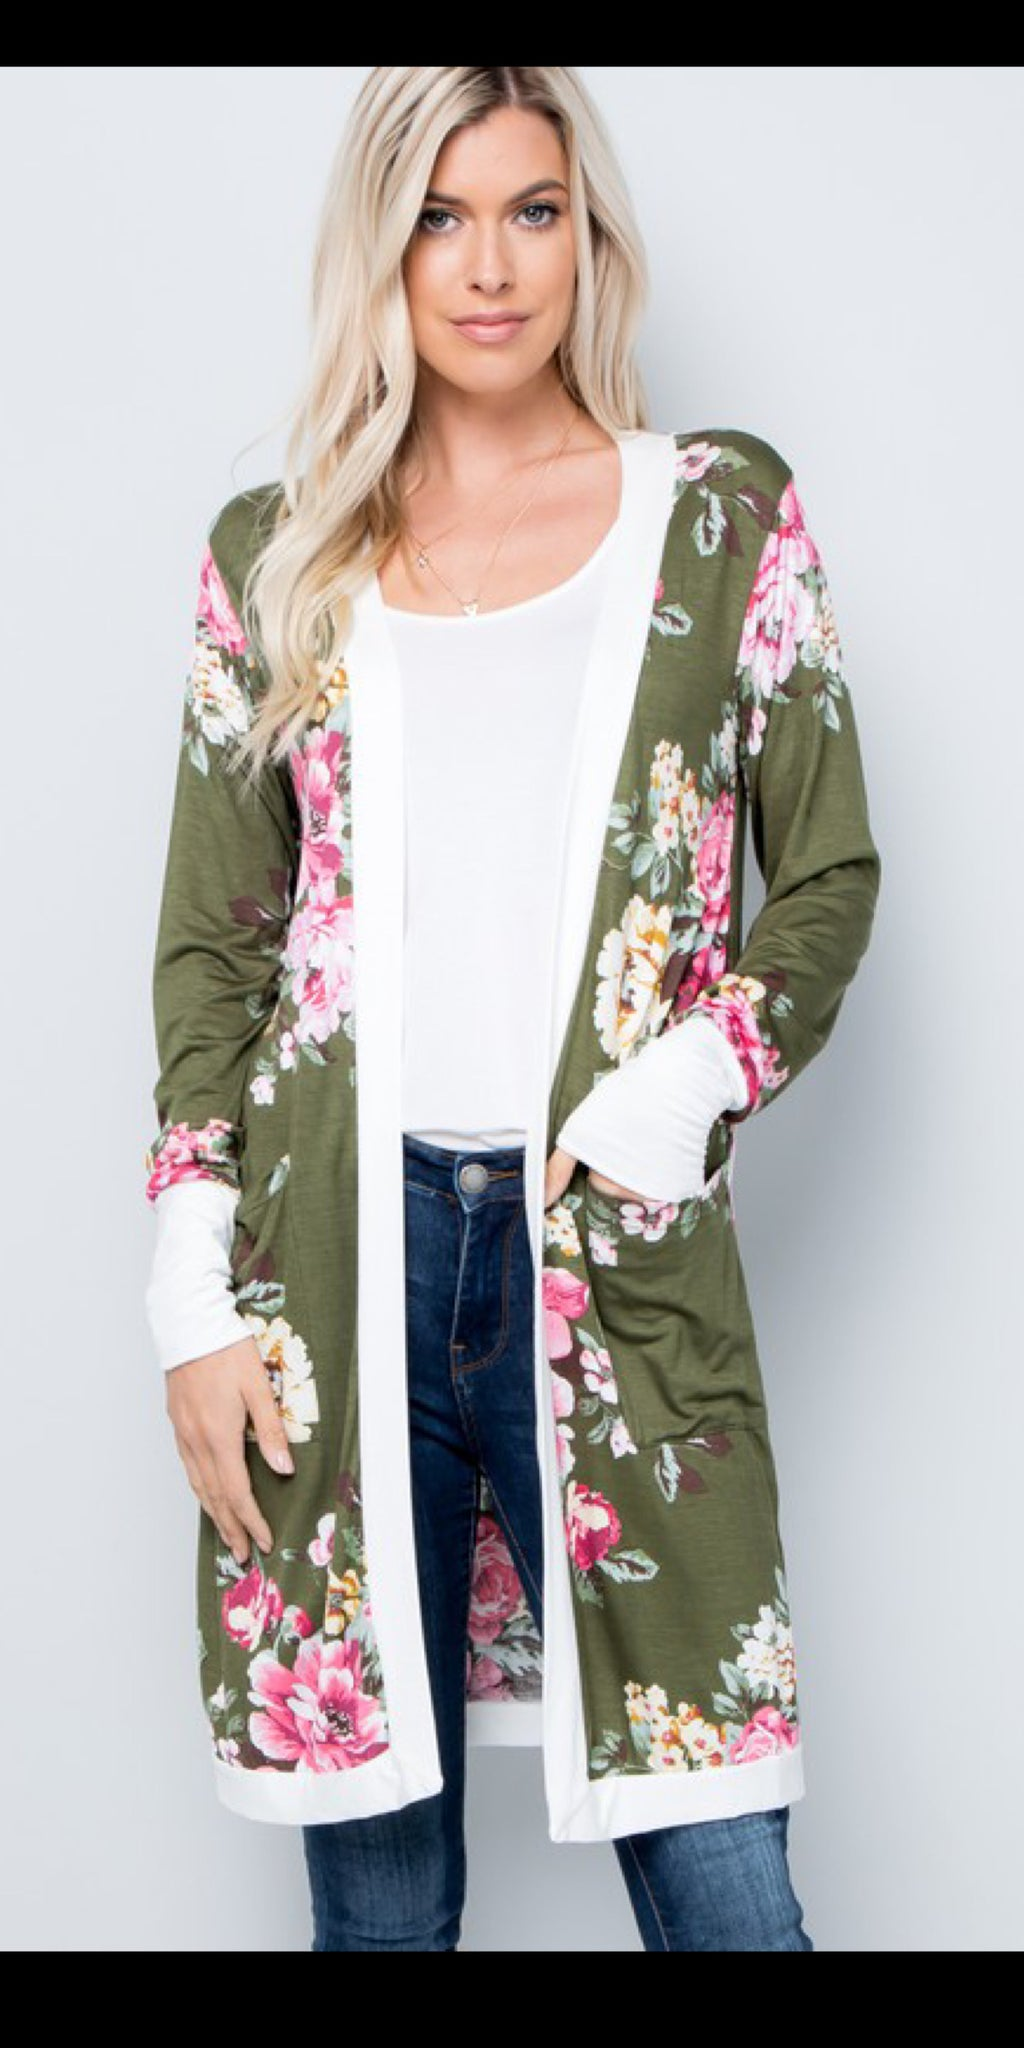 Bring on Spring Olive Floral Cardigan - Also in Plus Size